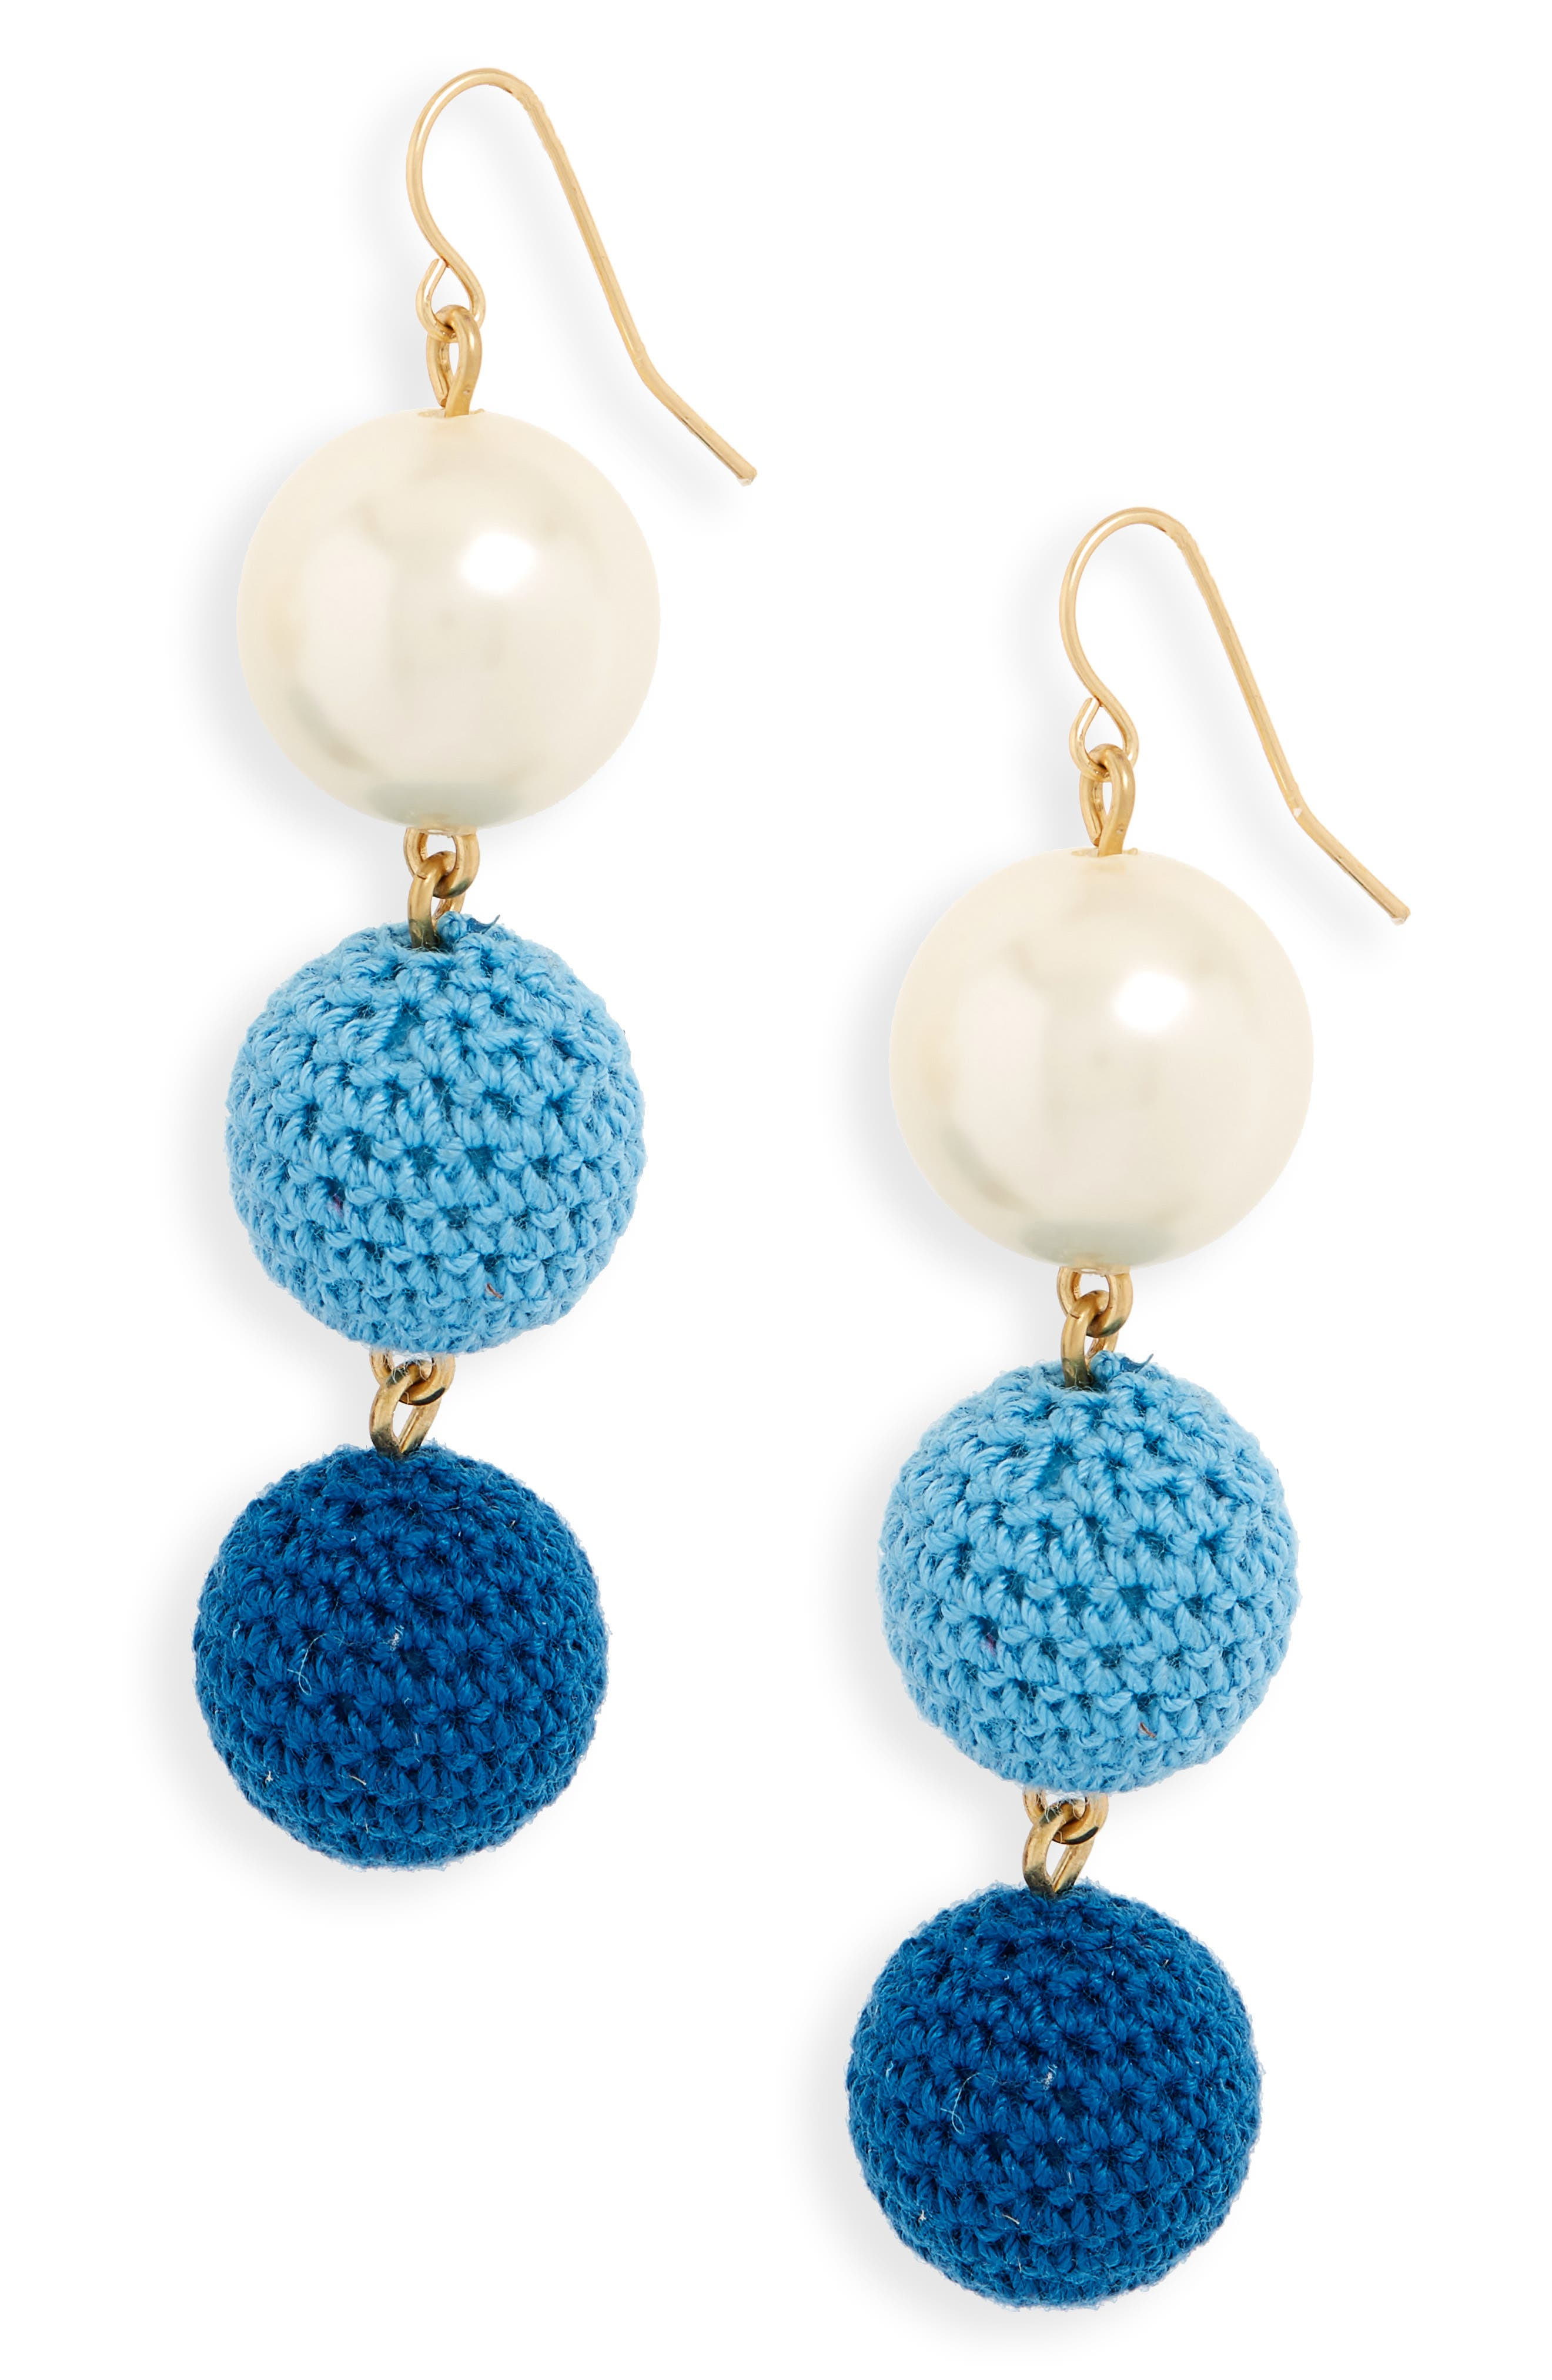 Crochet Ball and Imitation Pearl Drop Earrings,                         Main,                         color, 400